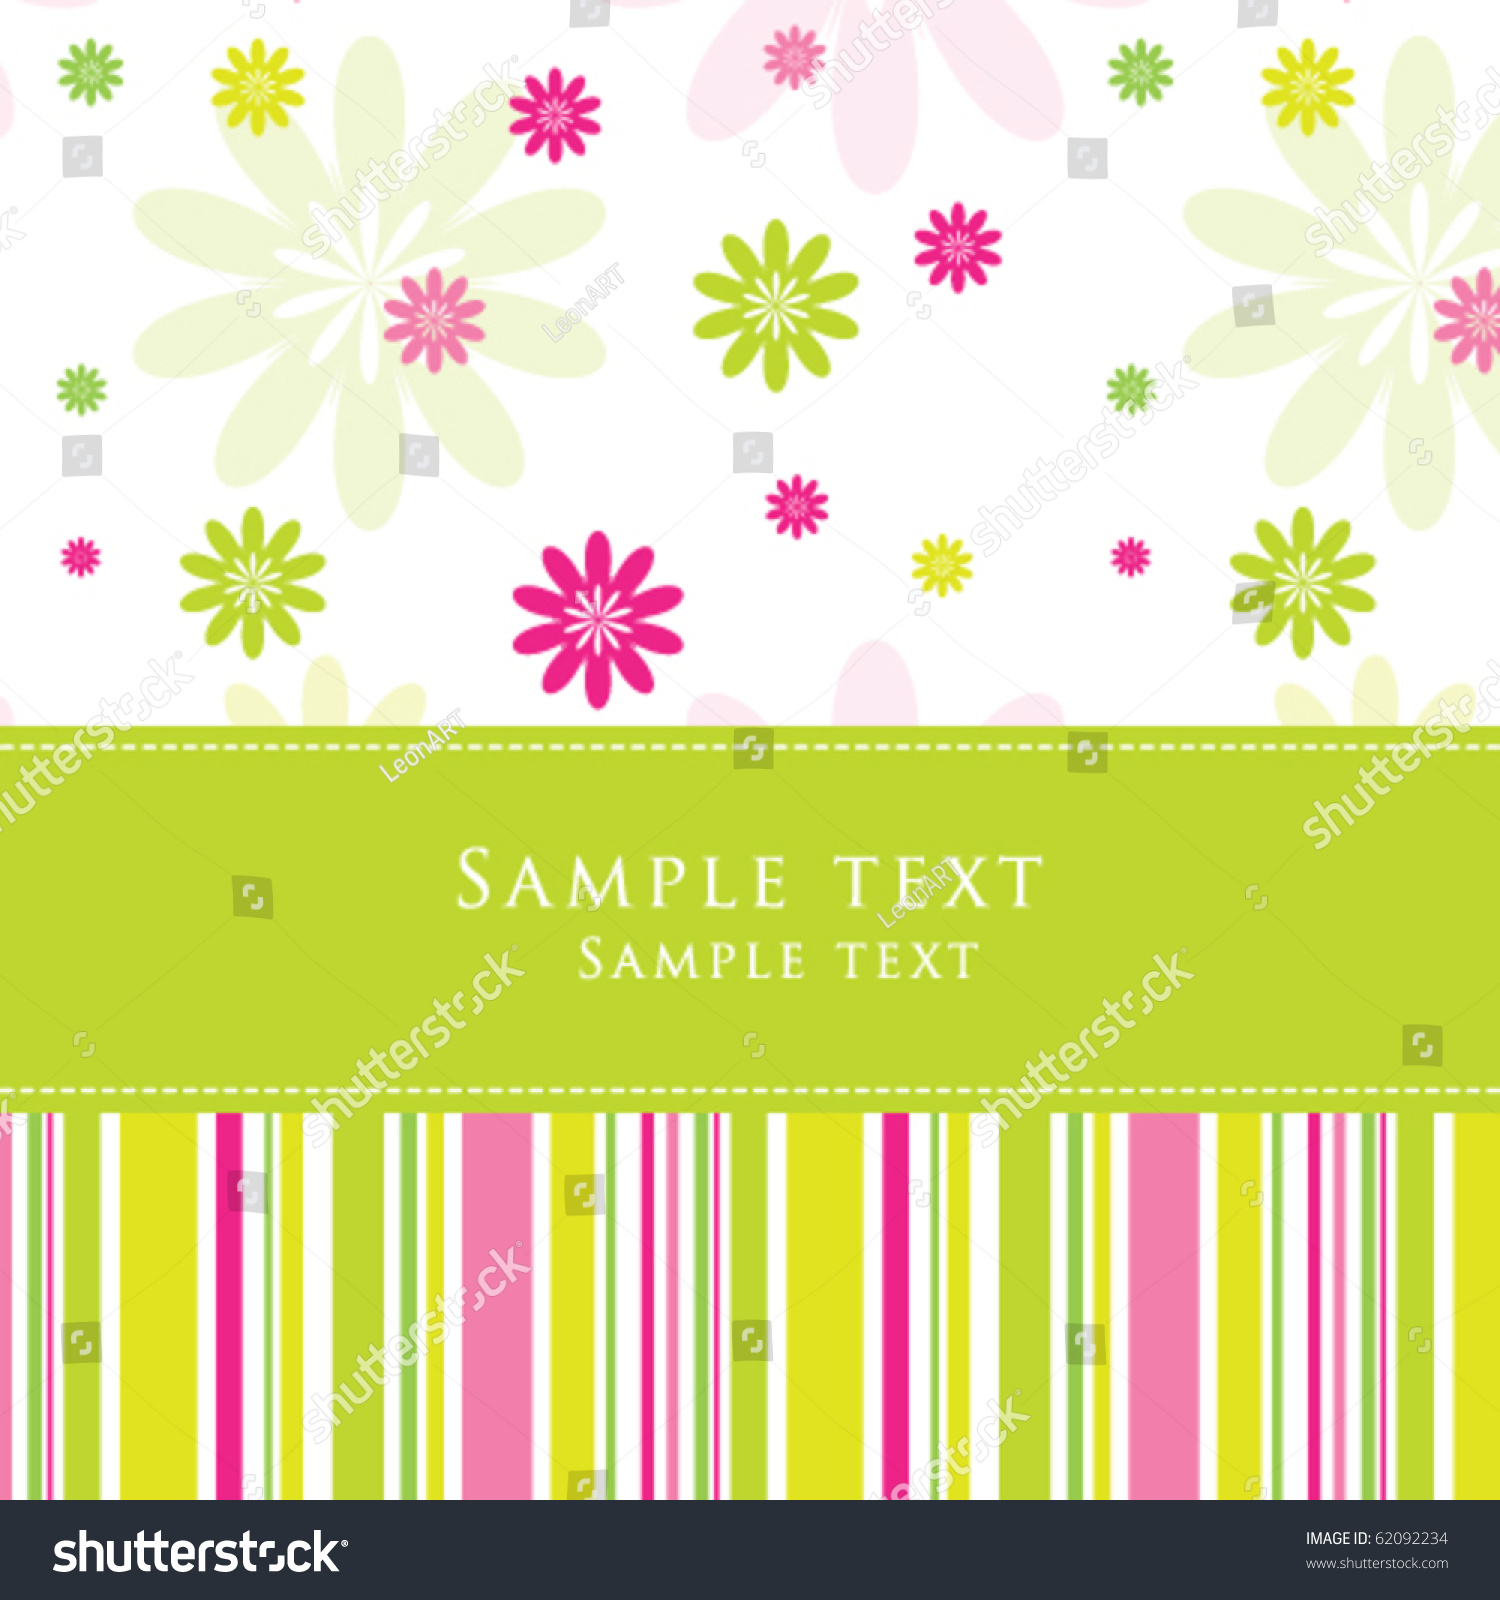 Birthday Card, Nice Greeting Card   Template , Cute Simple Design   For Baby  Shower